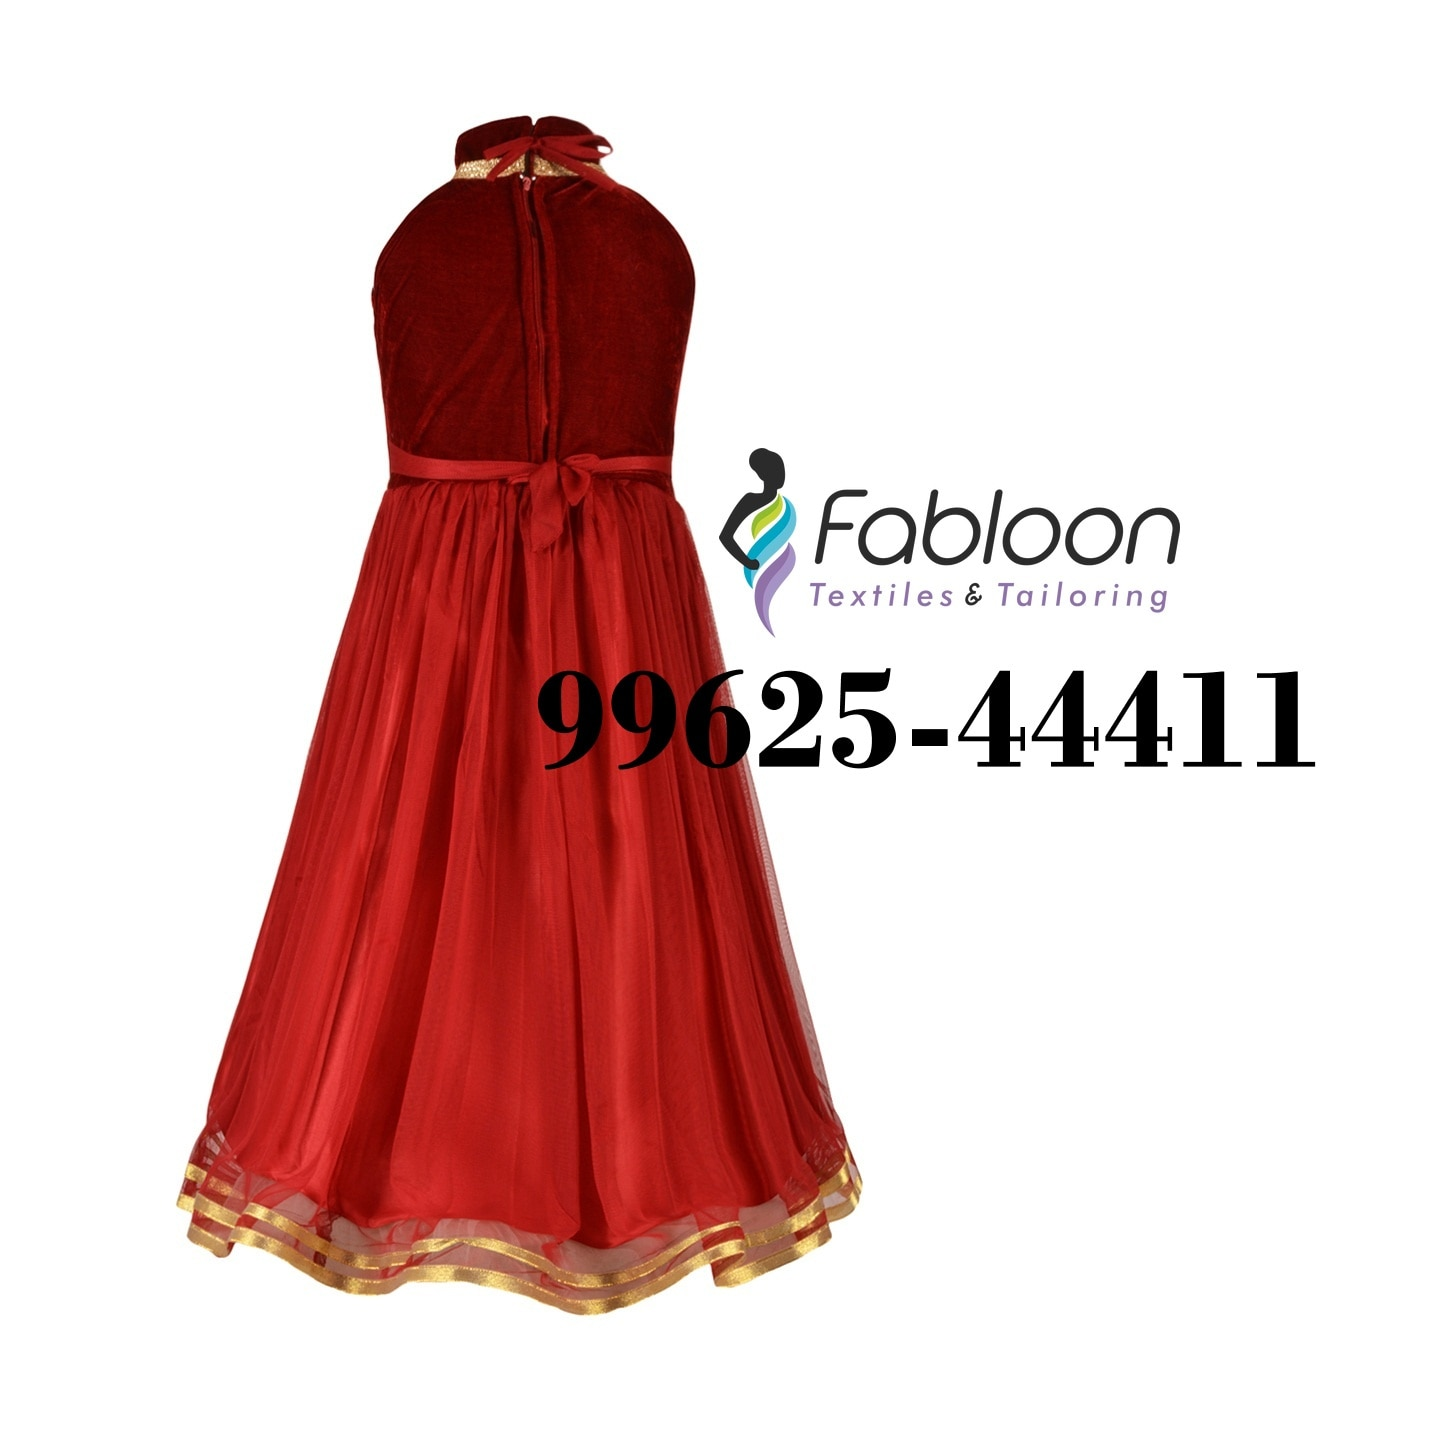 Latest frocks designs At Fabloon Blouse Embroidery In Vadapalani, Mob: +91 9962544411, 044 48644411.  Near Vadapalani you would find Amazing Western Flared Dresses to be worn at Casual Gatherings and Occasions. The Comfortable and Chic Style of the Western Frocks is best for flaunting as an Elegant Summer or a Rainy Day Fashion to keep the heat and rain off you. Available in Floral Patterns and Amazing Neck Designs, the Westerns Frocks look best in the Cotton Fabric, however, you could also choose from the wide range of Lace, Georgette and Chiffon Fabrics the Frocks are available in our showroom Fabloon. Check all updates for more collections.